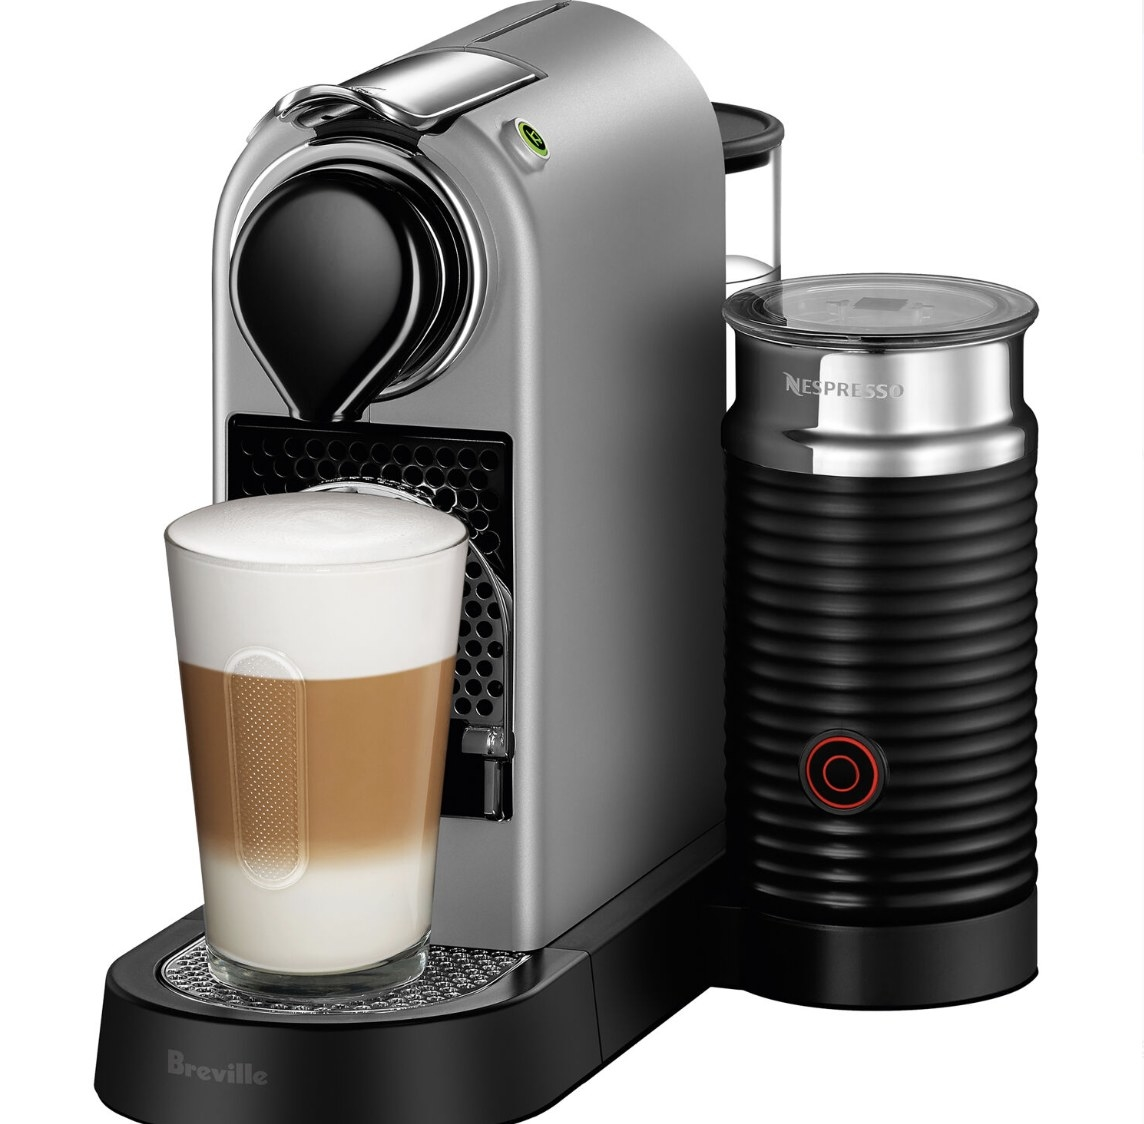 """The black and silver machine says """"NESPRESSO"""" and """"Breville"""" with a brewed coffee with foam in a cup"""